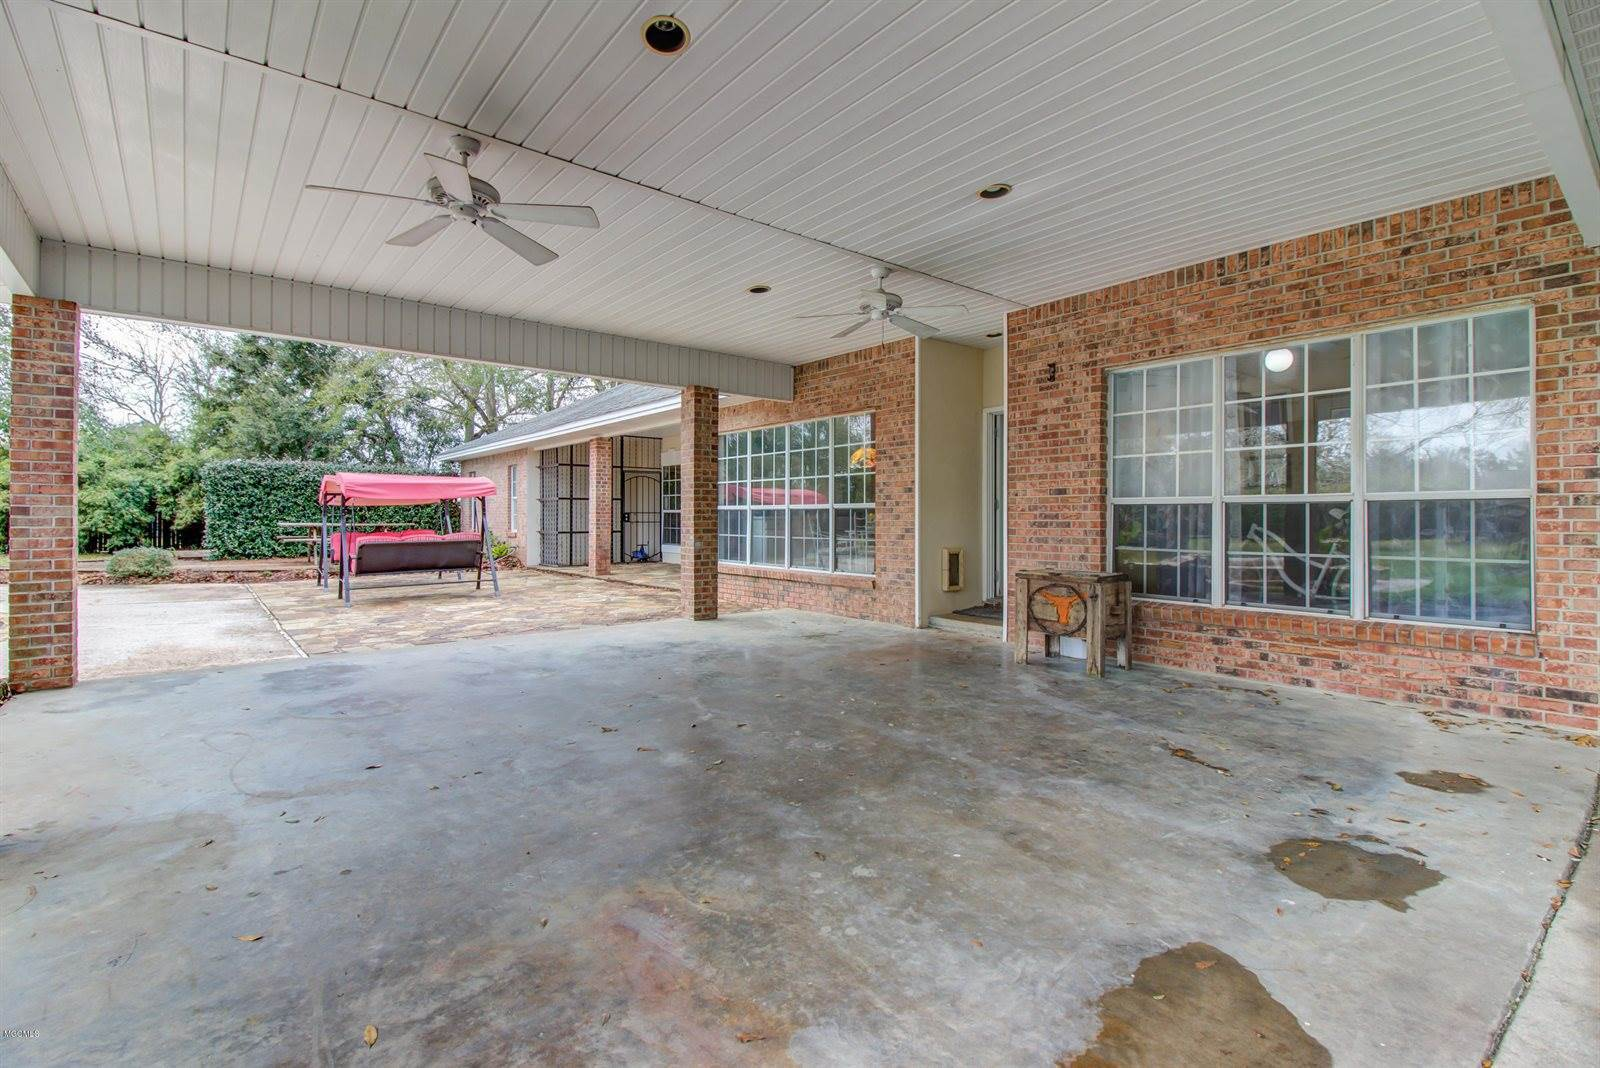 20169 Pineville Rd, Long Beach, MS 39560